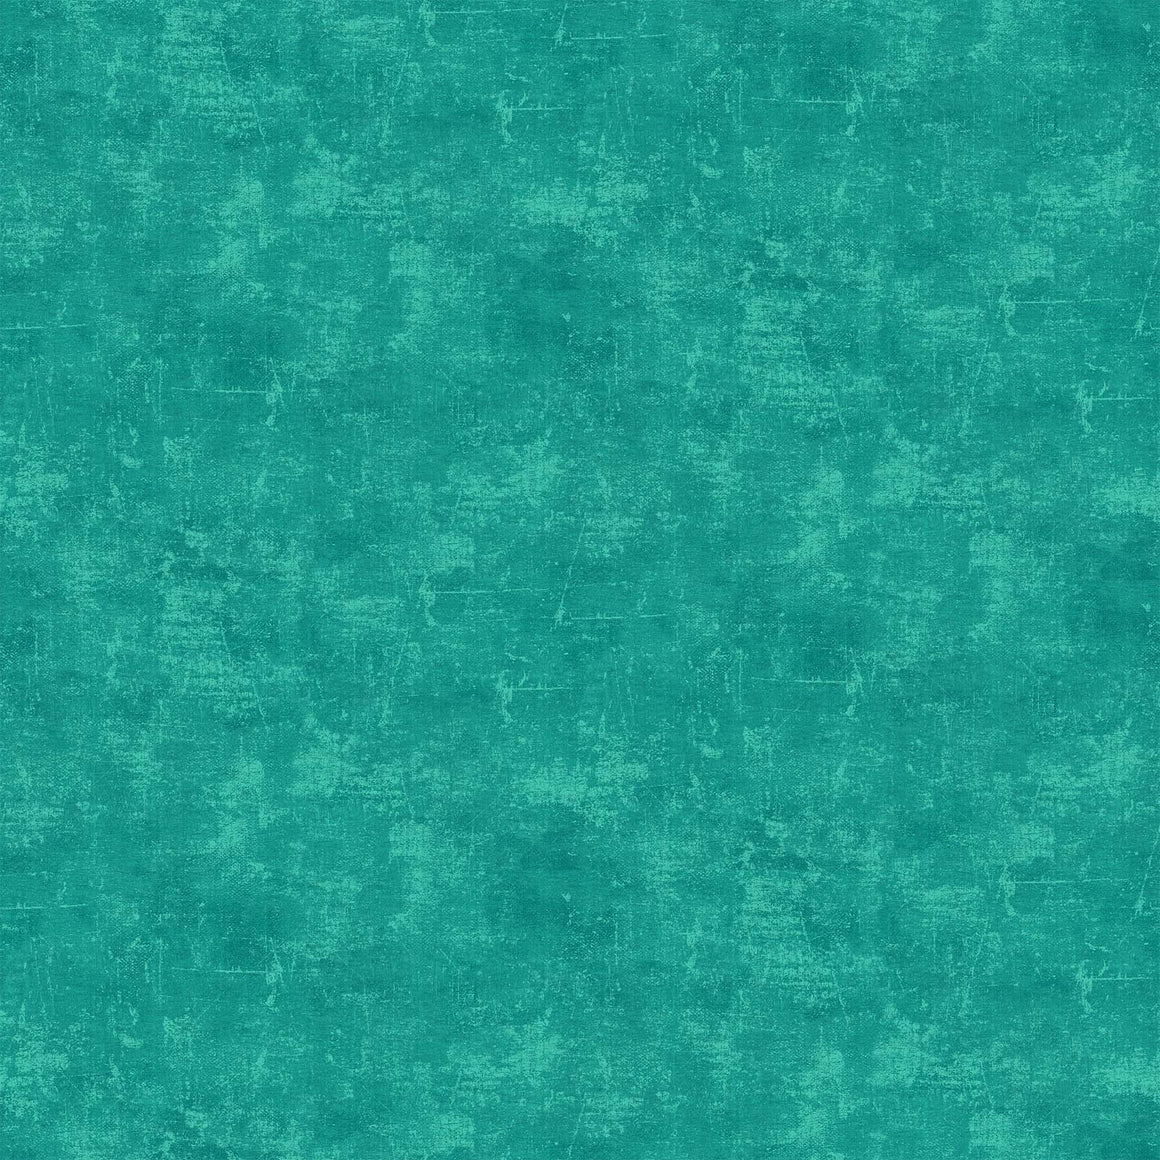 Agean Sea - Canvas Texture - 9030-63, Designer Fabric, Northcott, [variant_title] - Mad About Patchwork